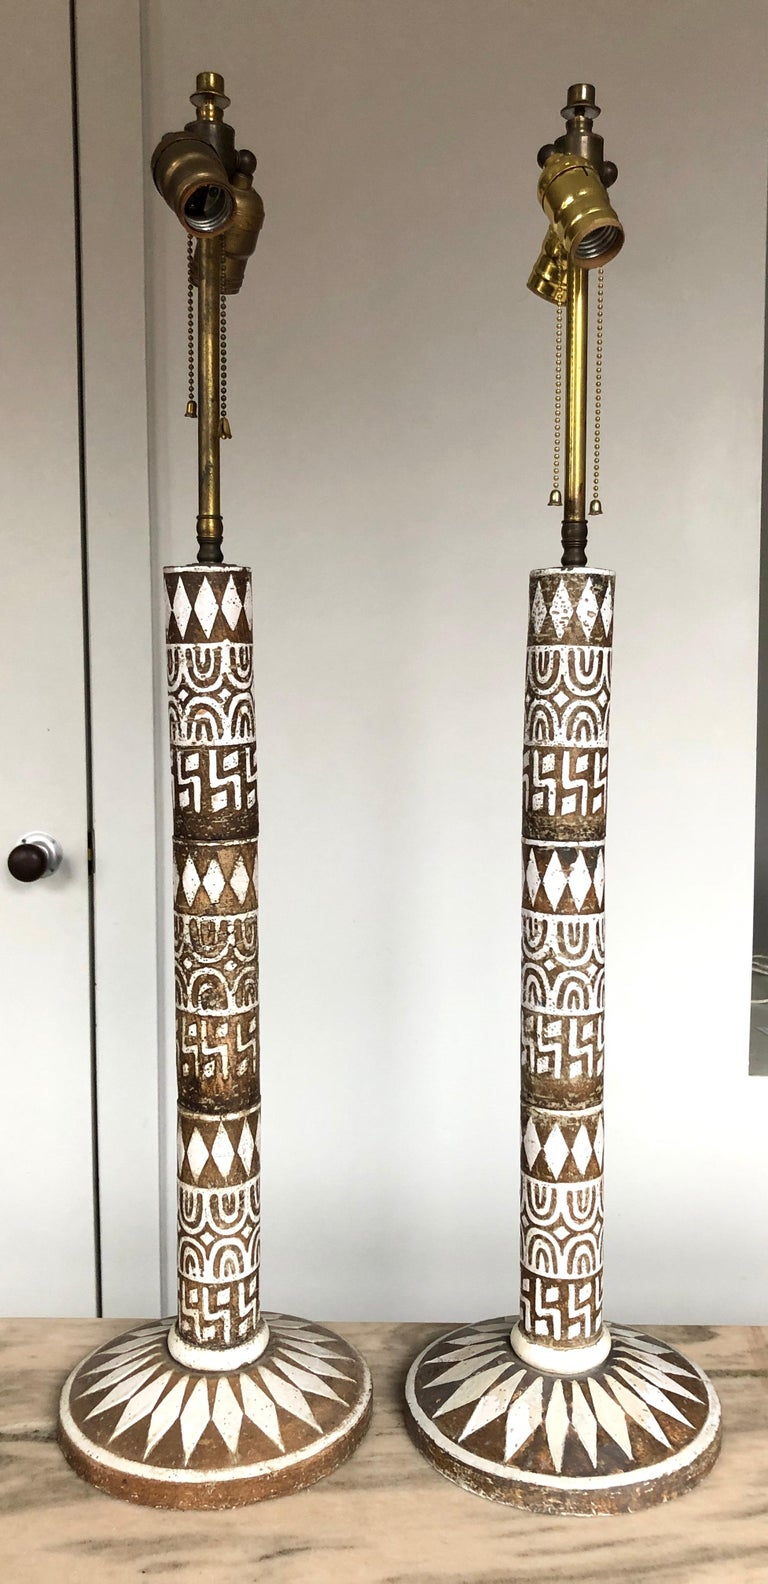 Italian Pair of Large Modernist Ceramic Table Lamps by Zaccagnini For Sale